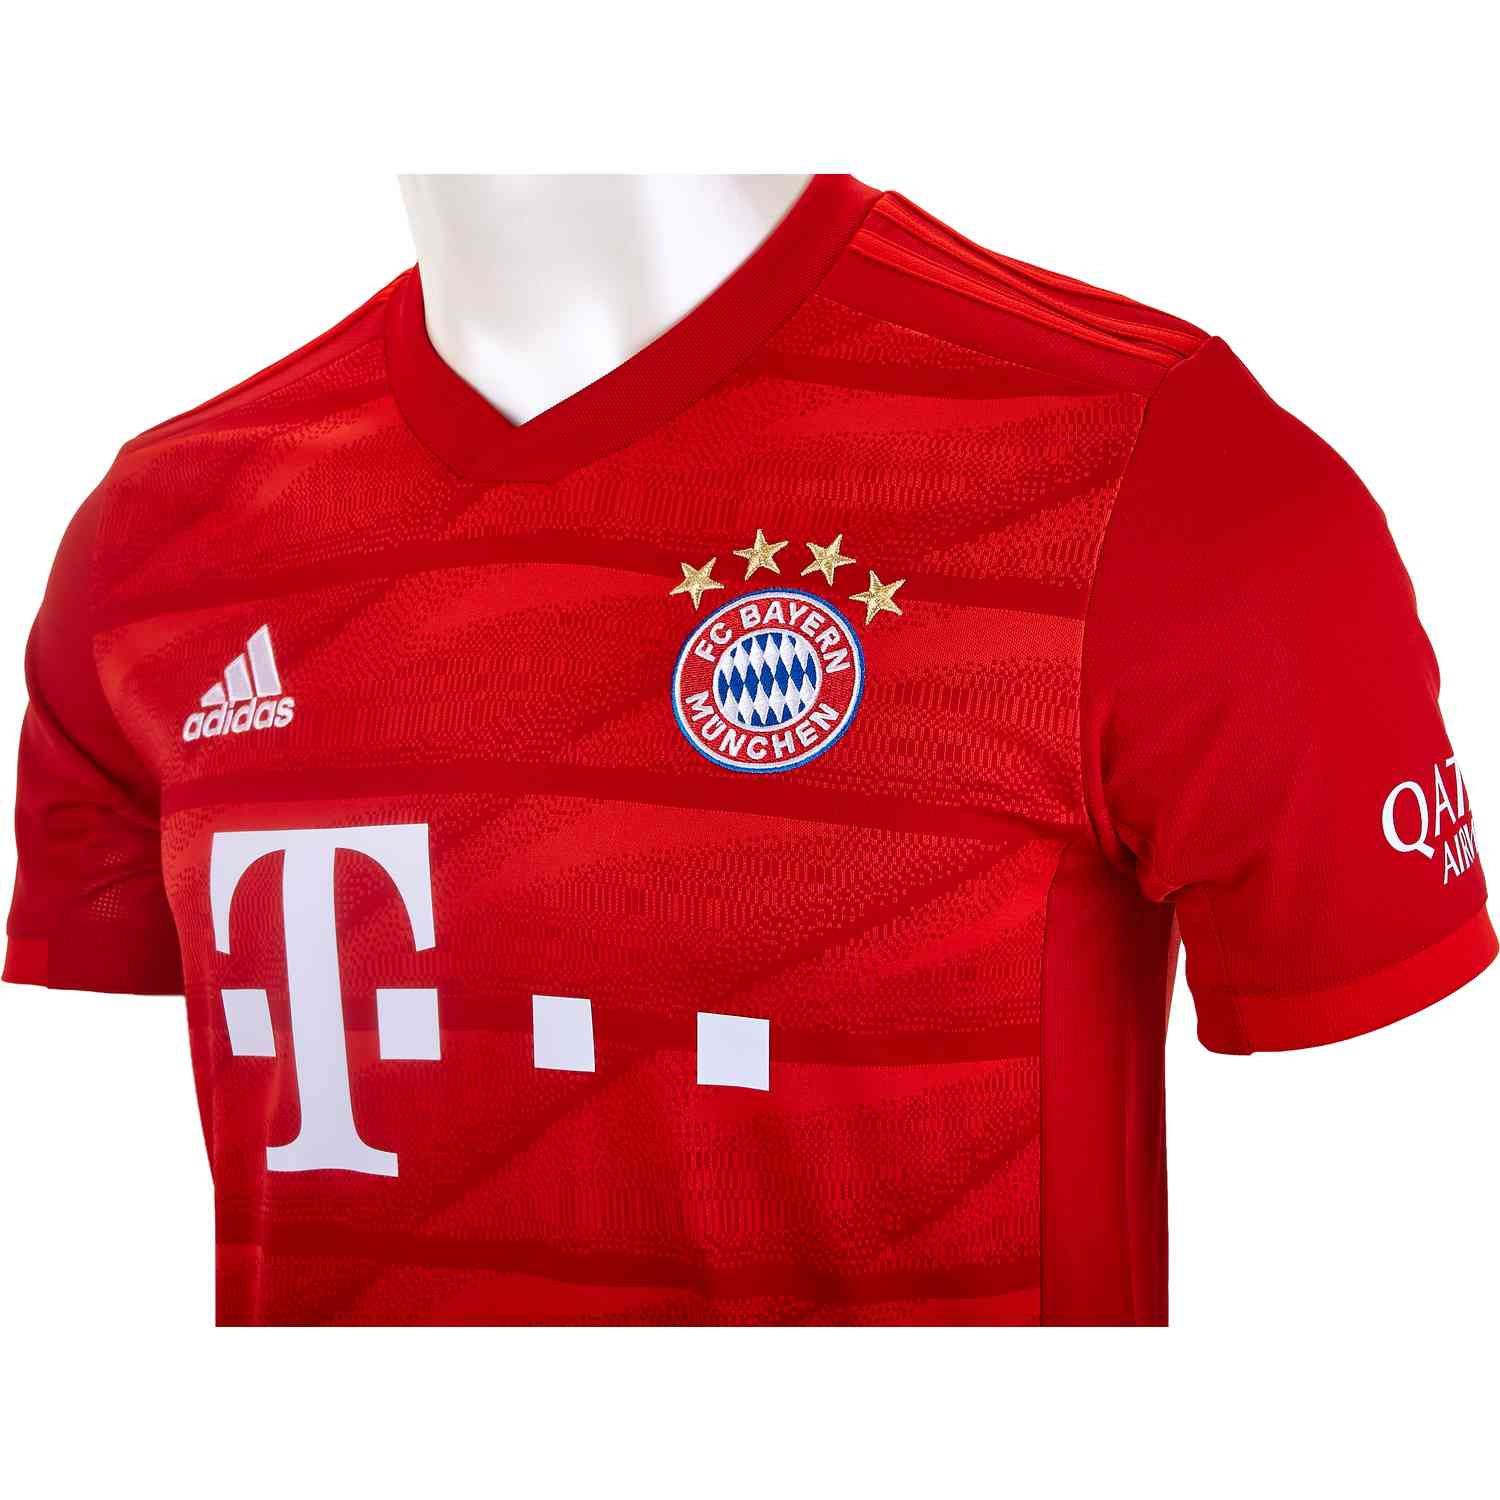 newest 7e2fc 24cfa 2019/20 adidas Thomas Muller Bayern Munich Home Jersey ...